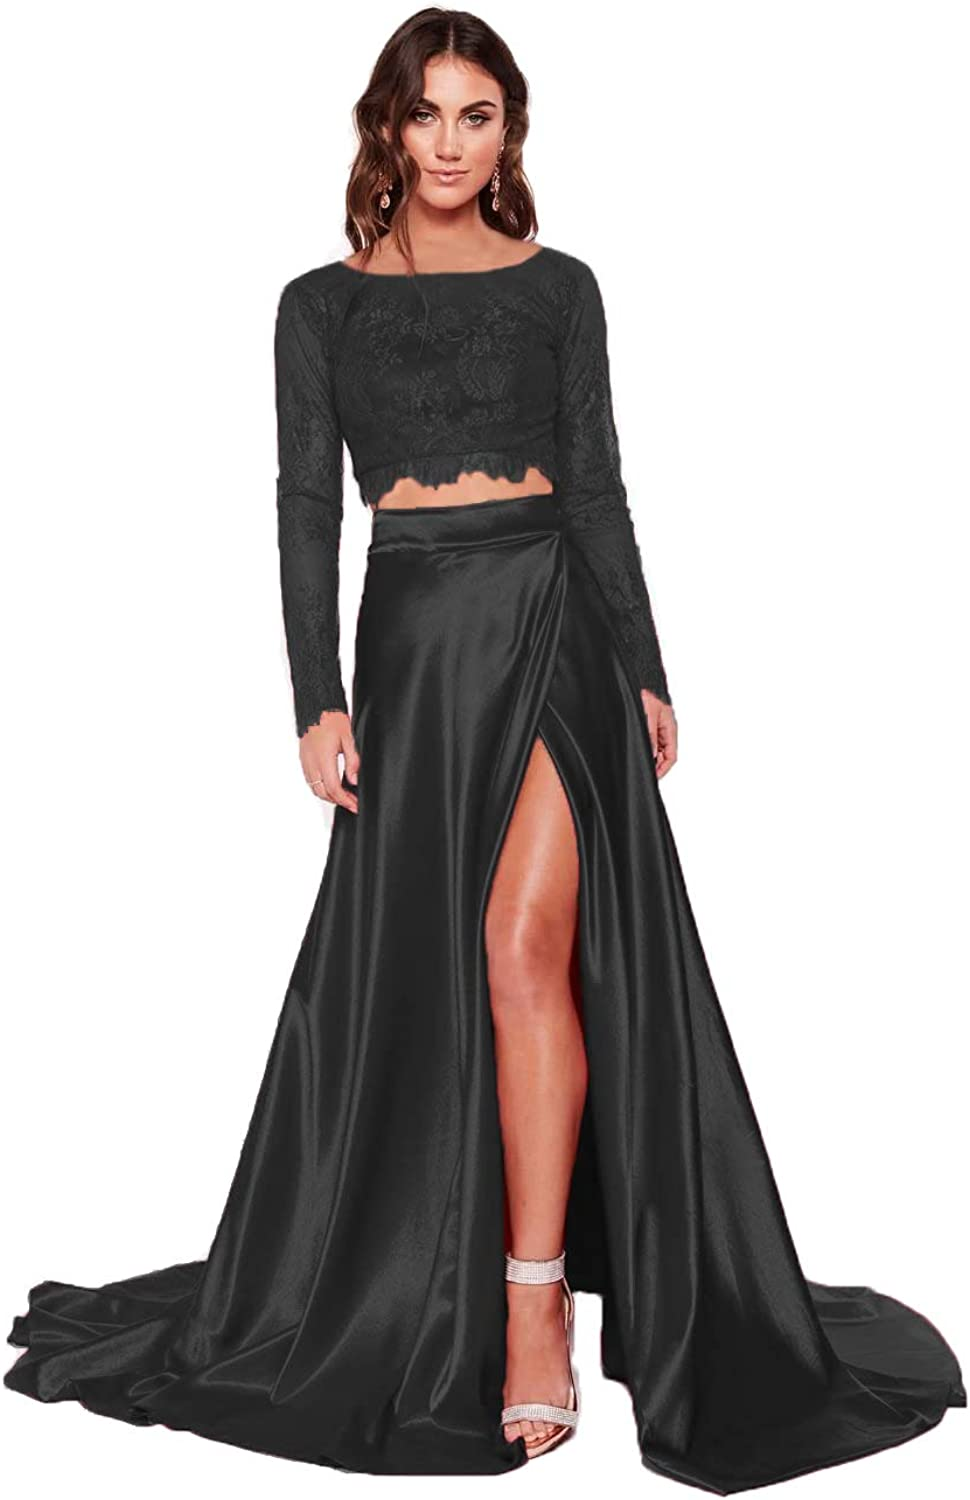 Clothfun Women's Lace Two Piece Prom Dresses 2021 Long Formal Dresses with Slit Evening Party Gowns with Pockets PM36